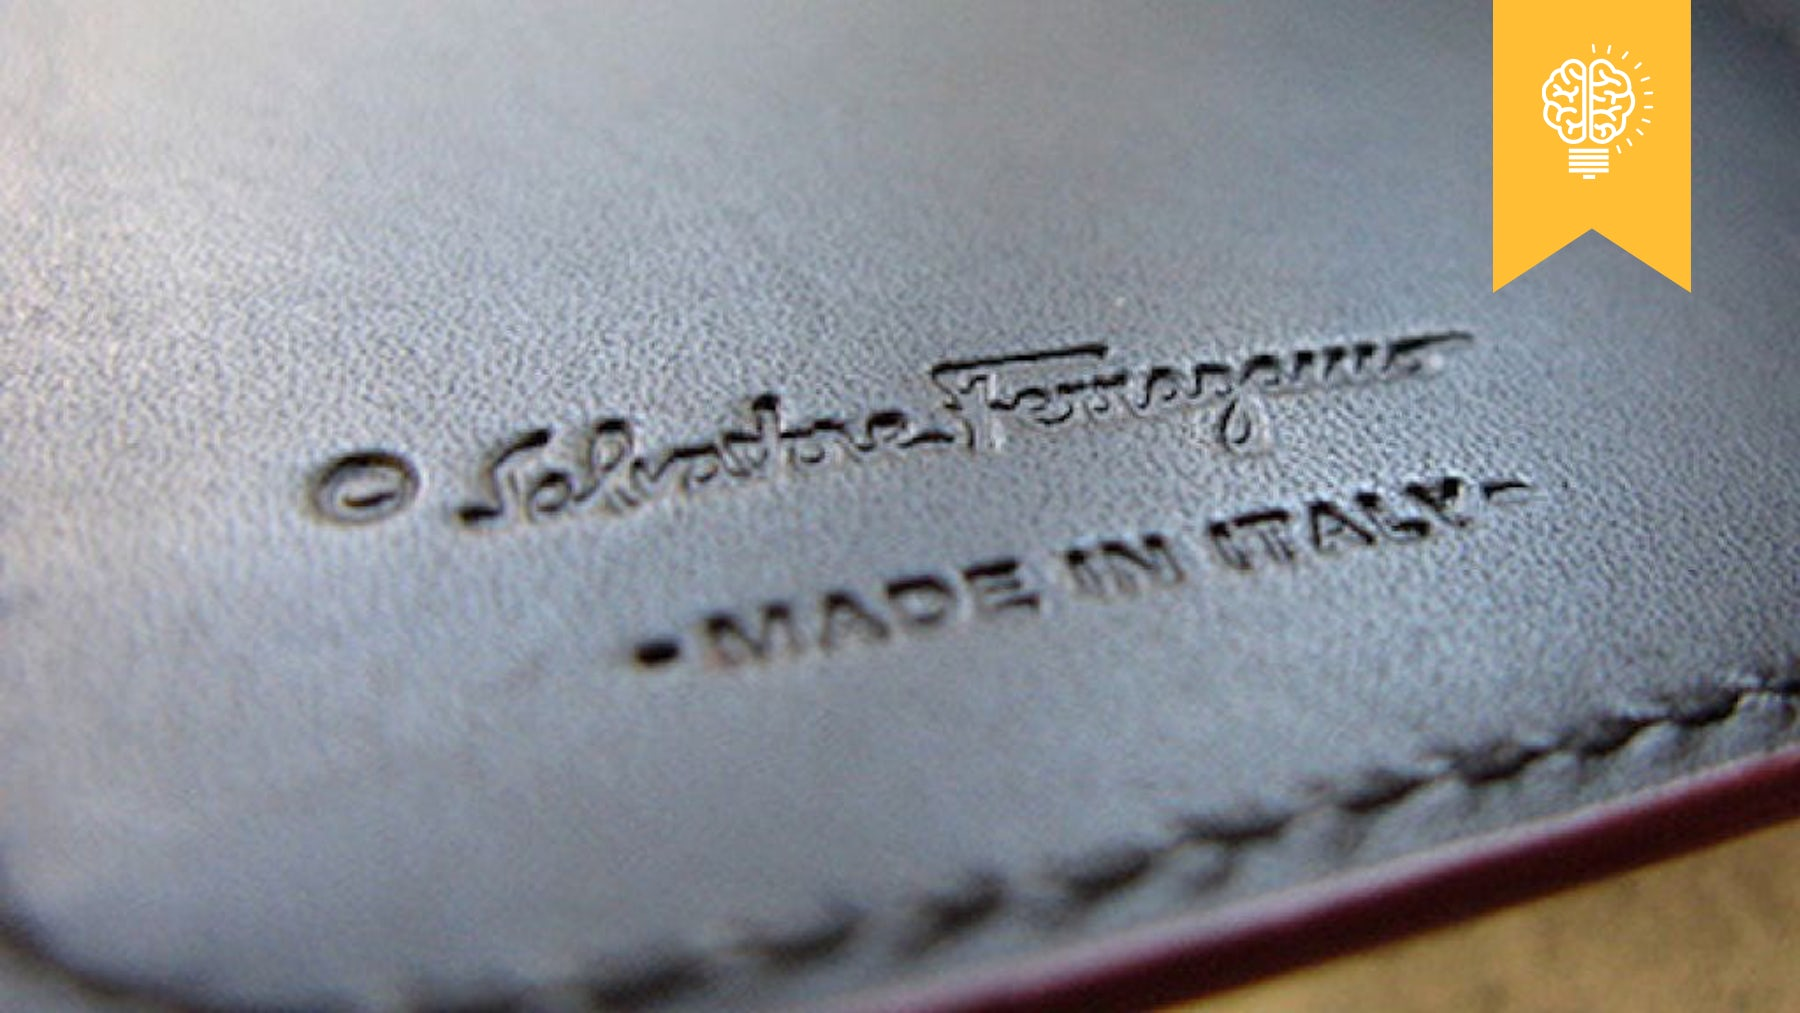 A 'Made in Italy' label | Source: BoF